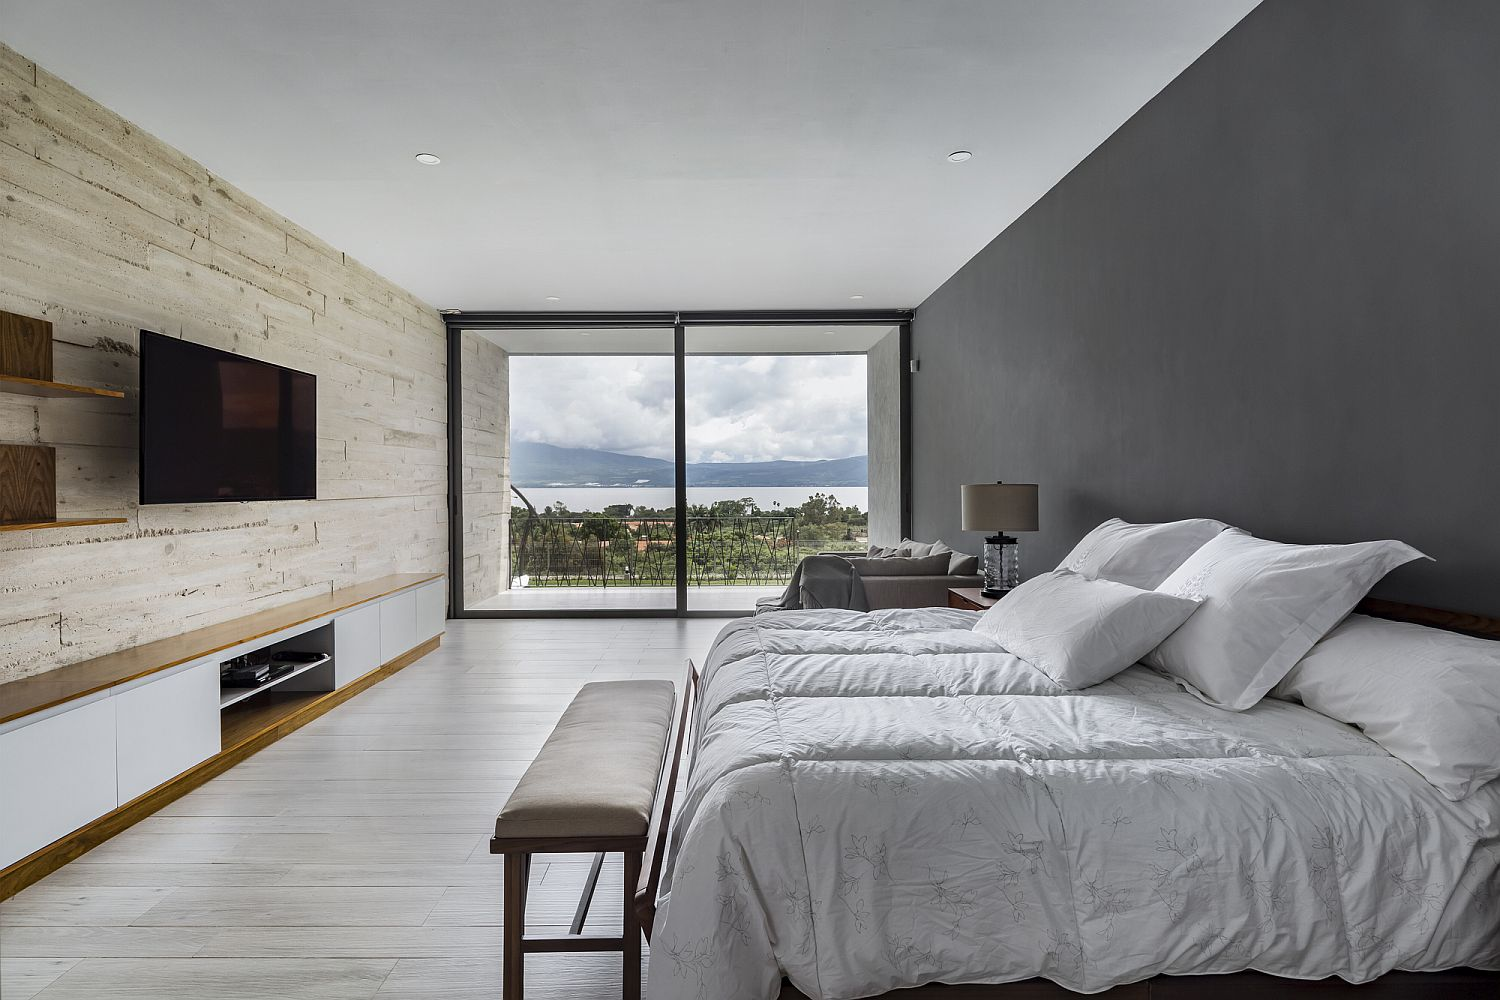 Bedroom of the Lake House with accent wooden wall and a lovely view